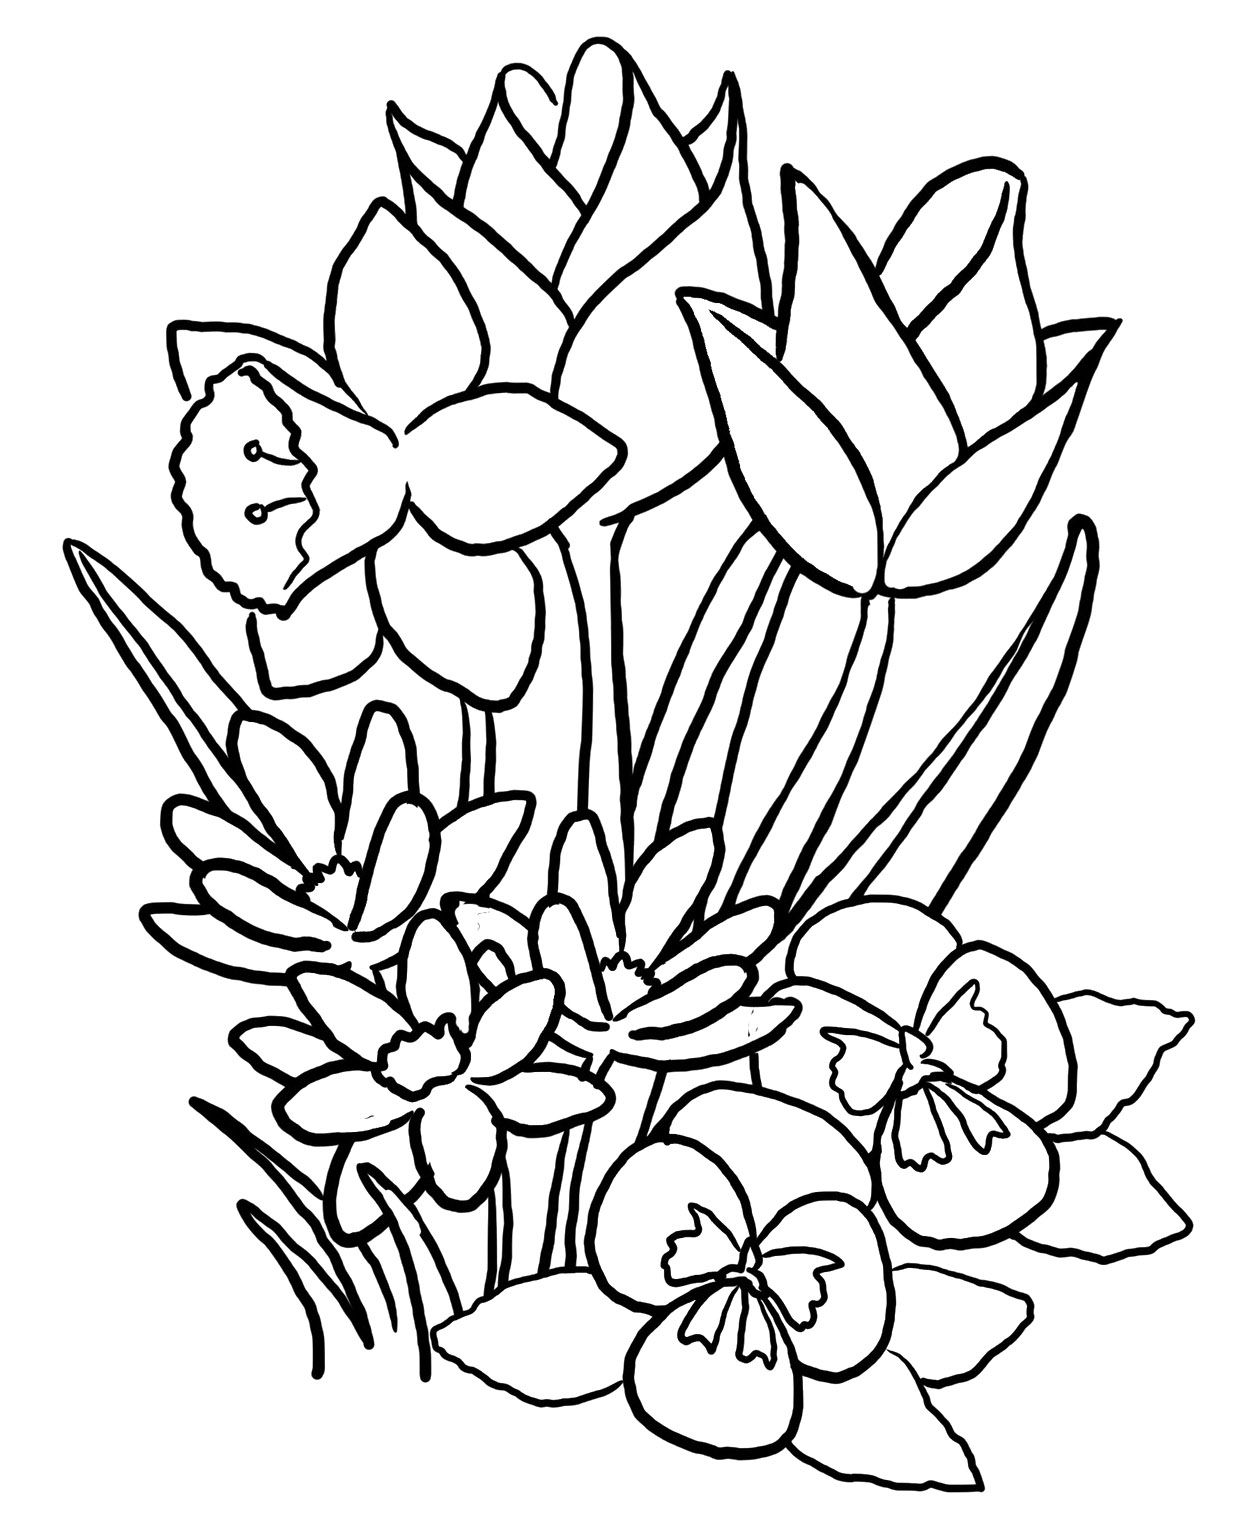 Free coloring pages spring flowers - Spring Coloring Pages Printable Spring Coloring Pages Free Spring Coloring Pages Online Spring